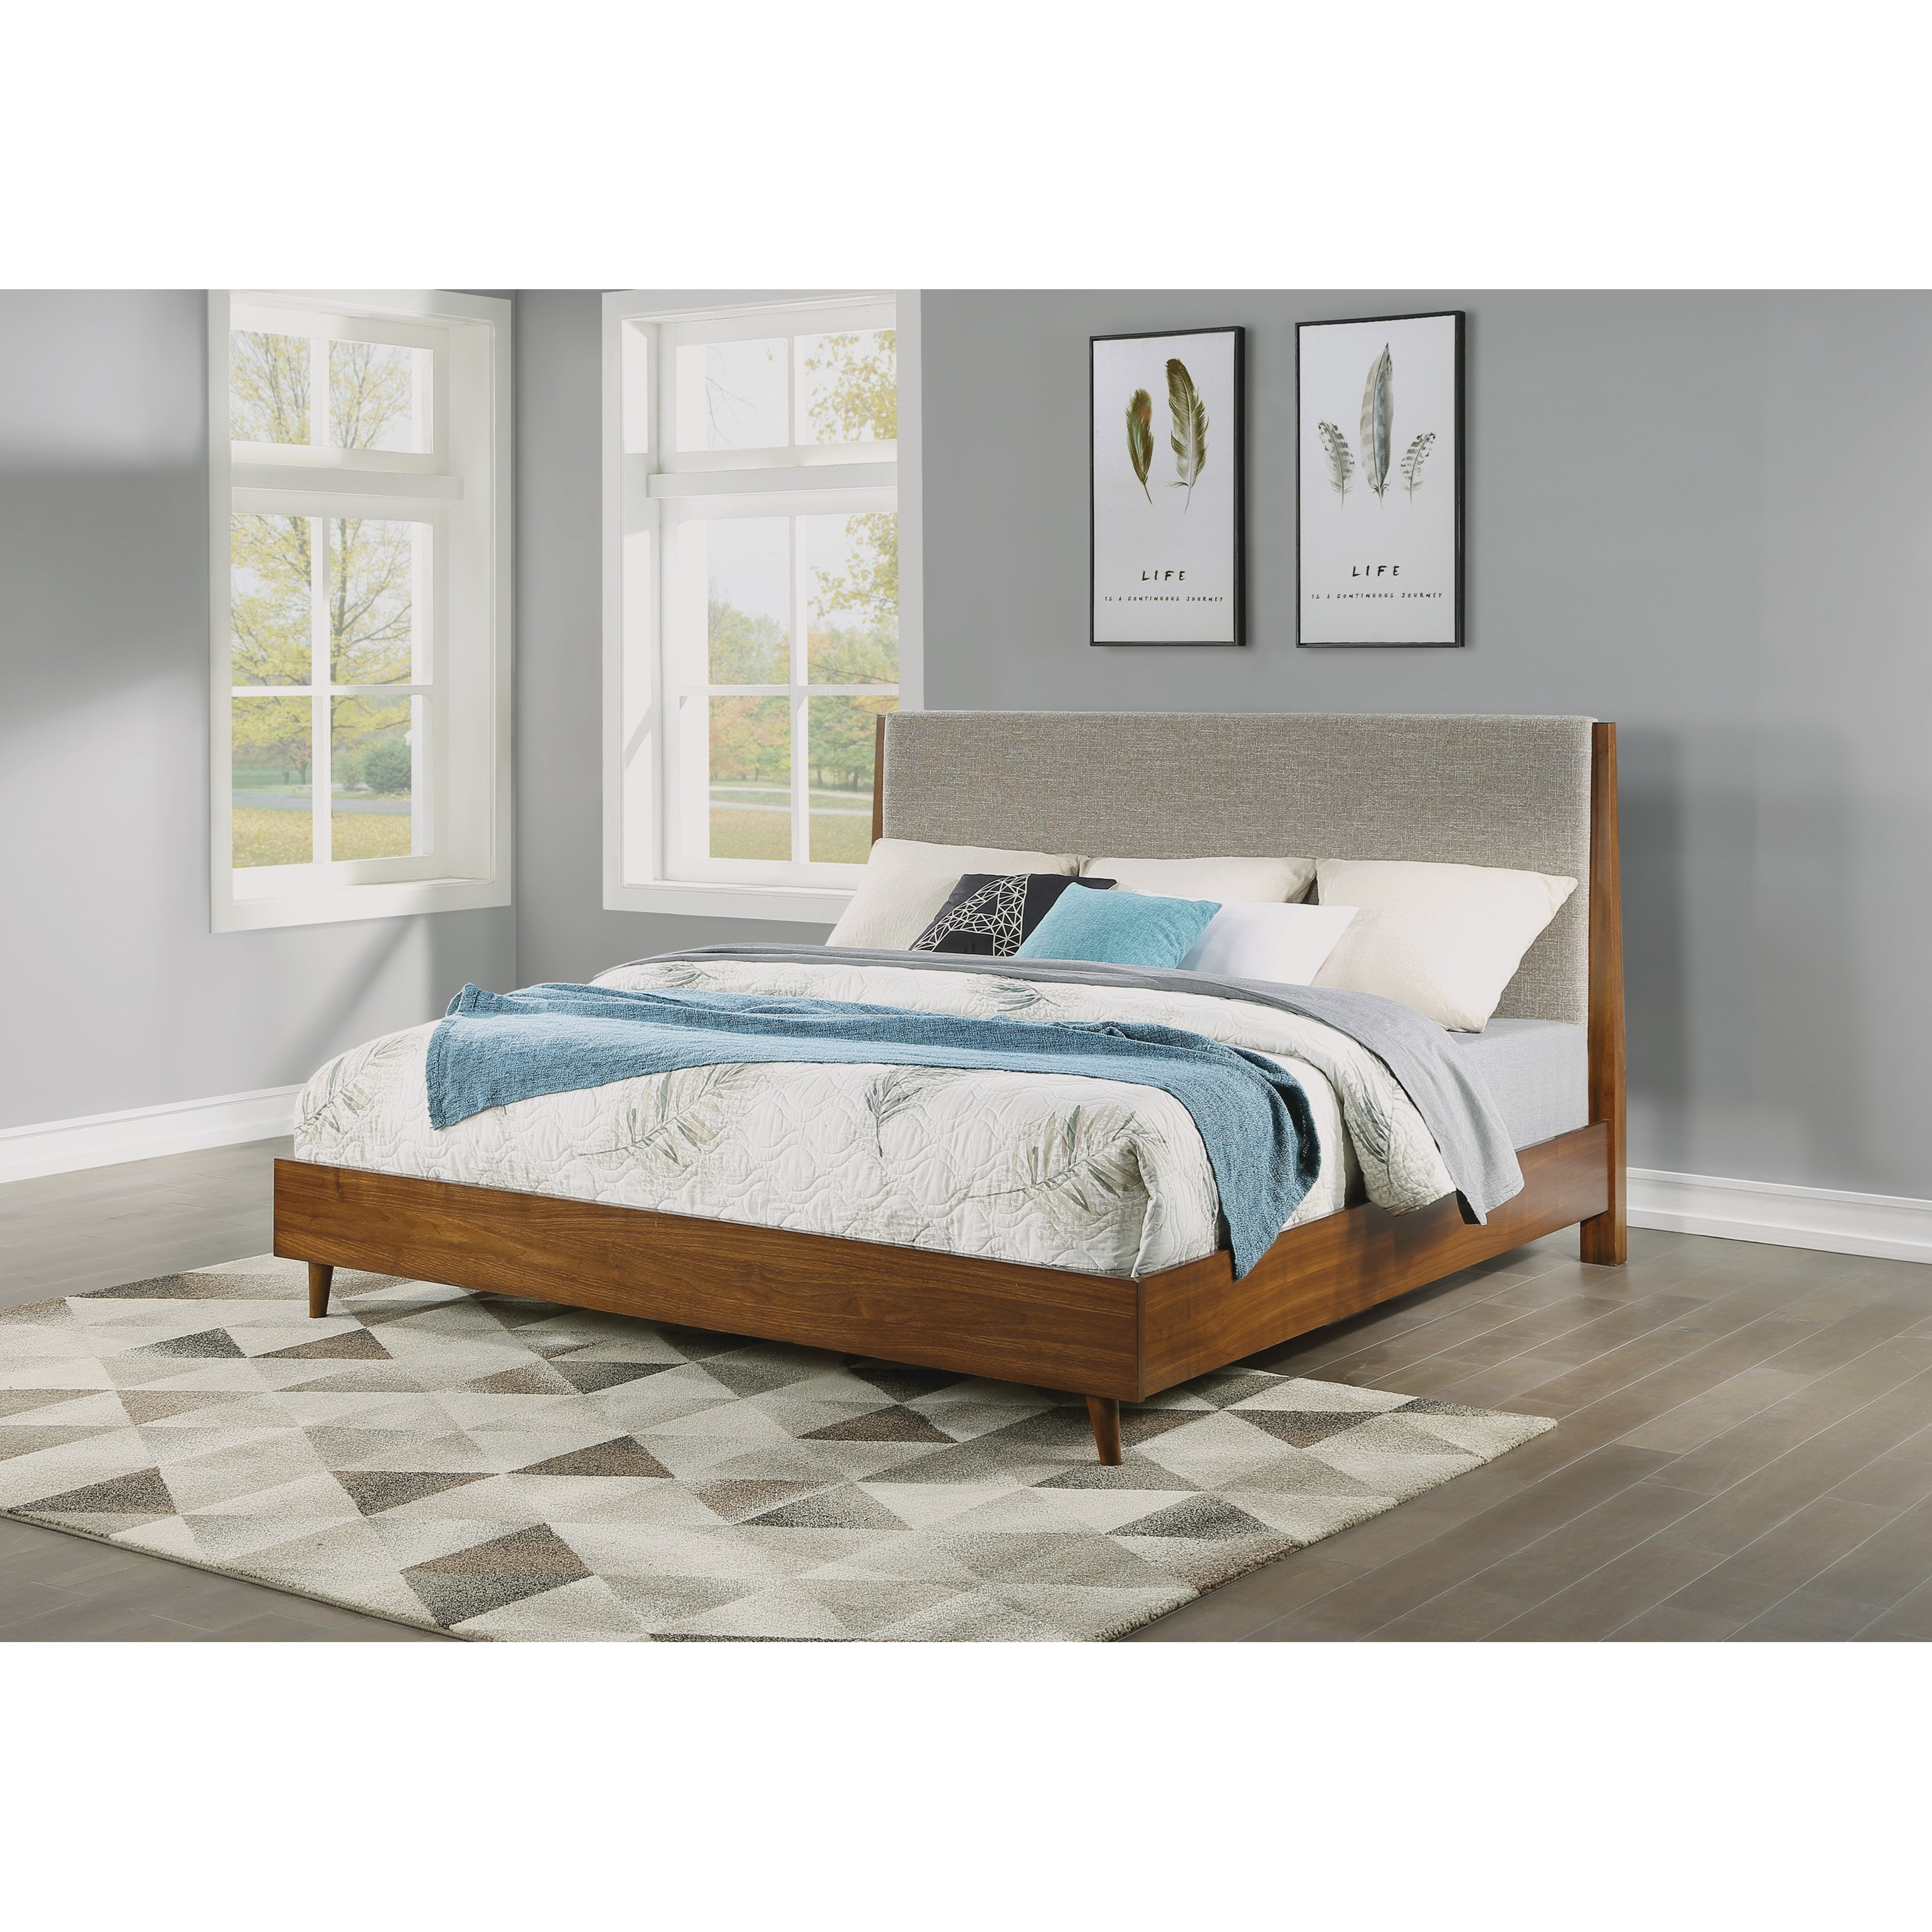 Ludwig Queen Upholstered Bed by Flexsteel Wynwood Collection at Northeast Factory Direct